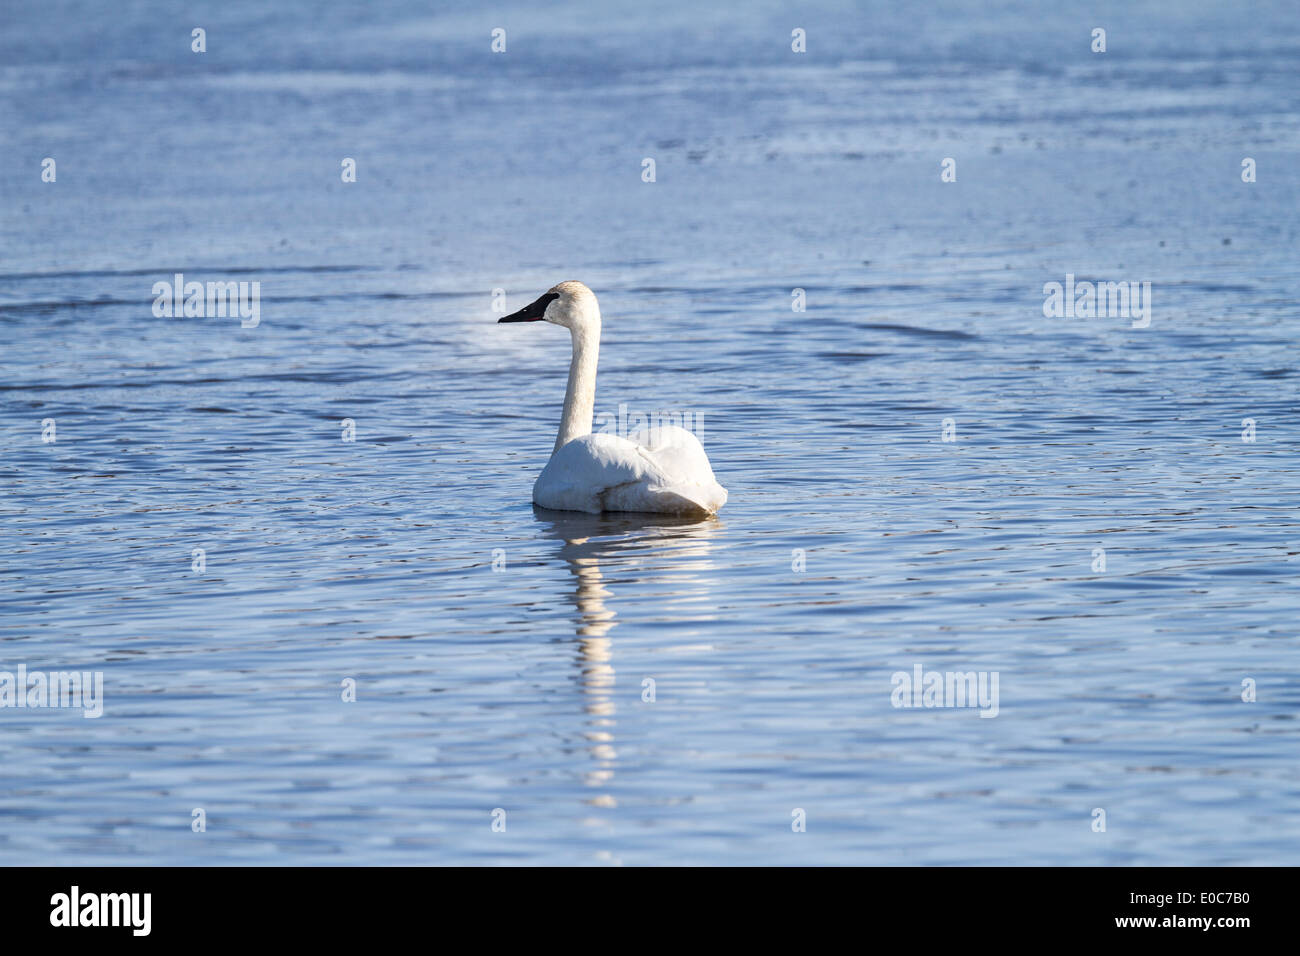 Trumpeter Swan (Cygnus buccinator) Beautiful white Trumpeter Swan, swimming in a blue lake. Rural, Alberta, Canada Stock Photo